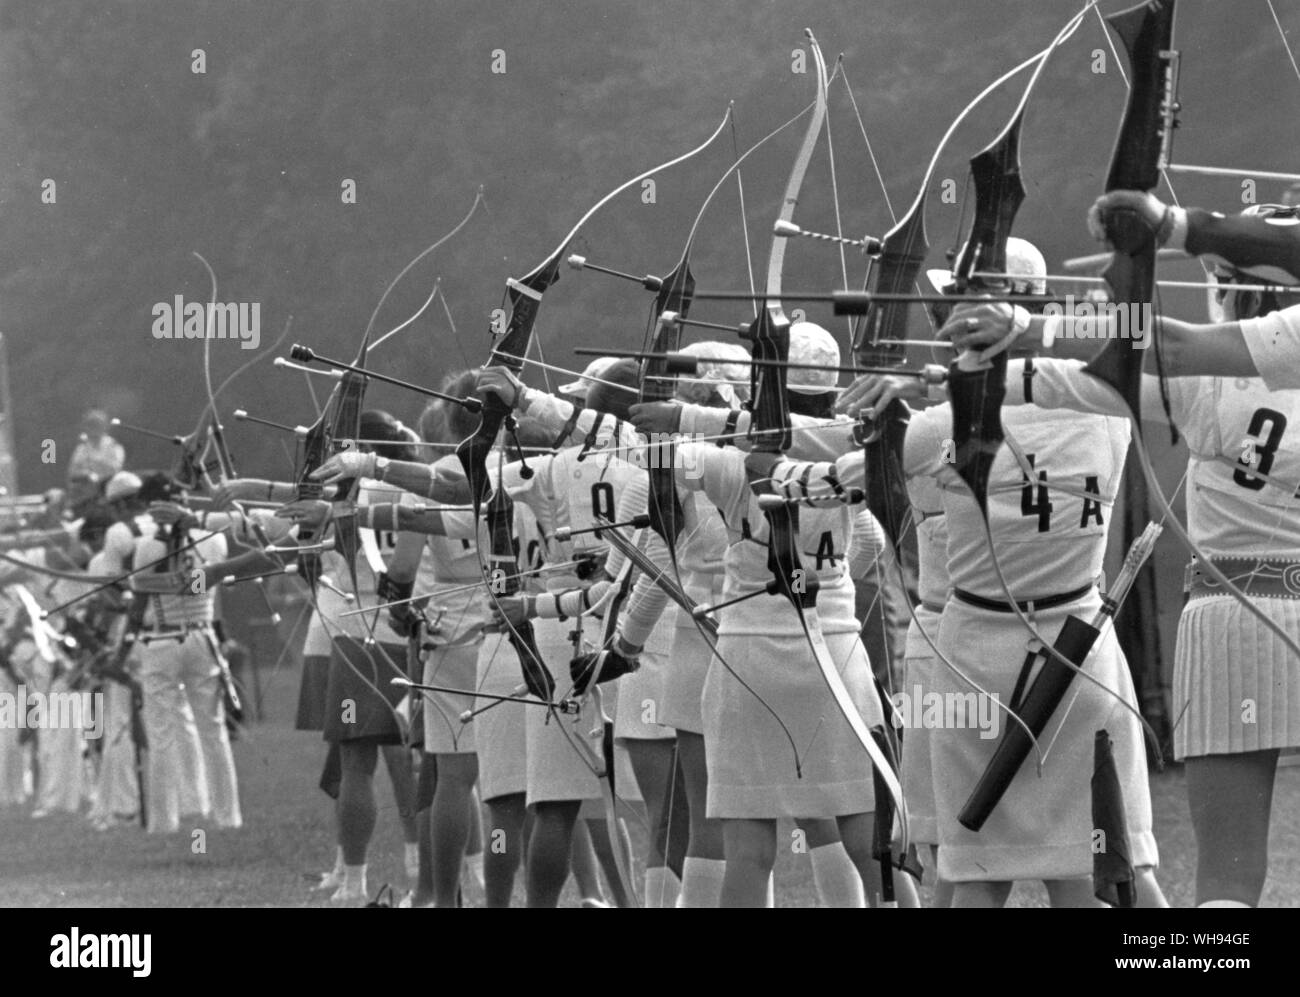 Competitors line up with bows strung at the start of the women's archery contest in Munich 7 September 1972. Archery returned to the Olympic scene for Stock Photo